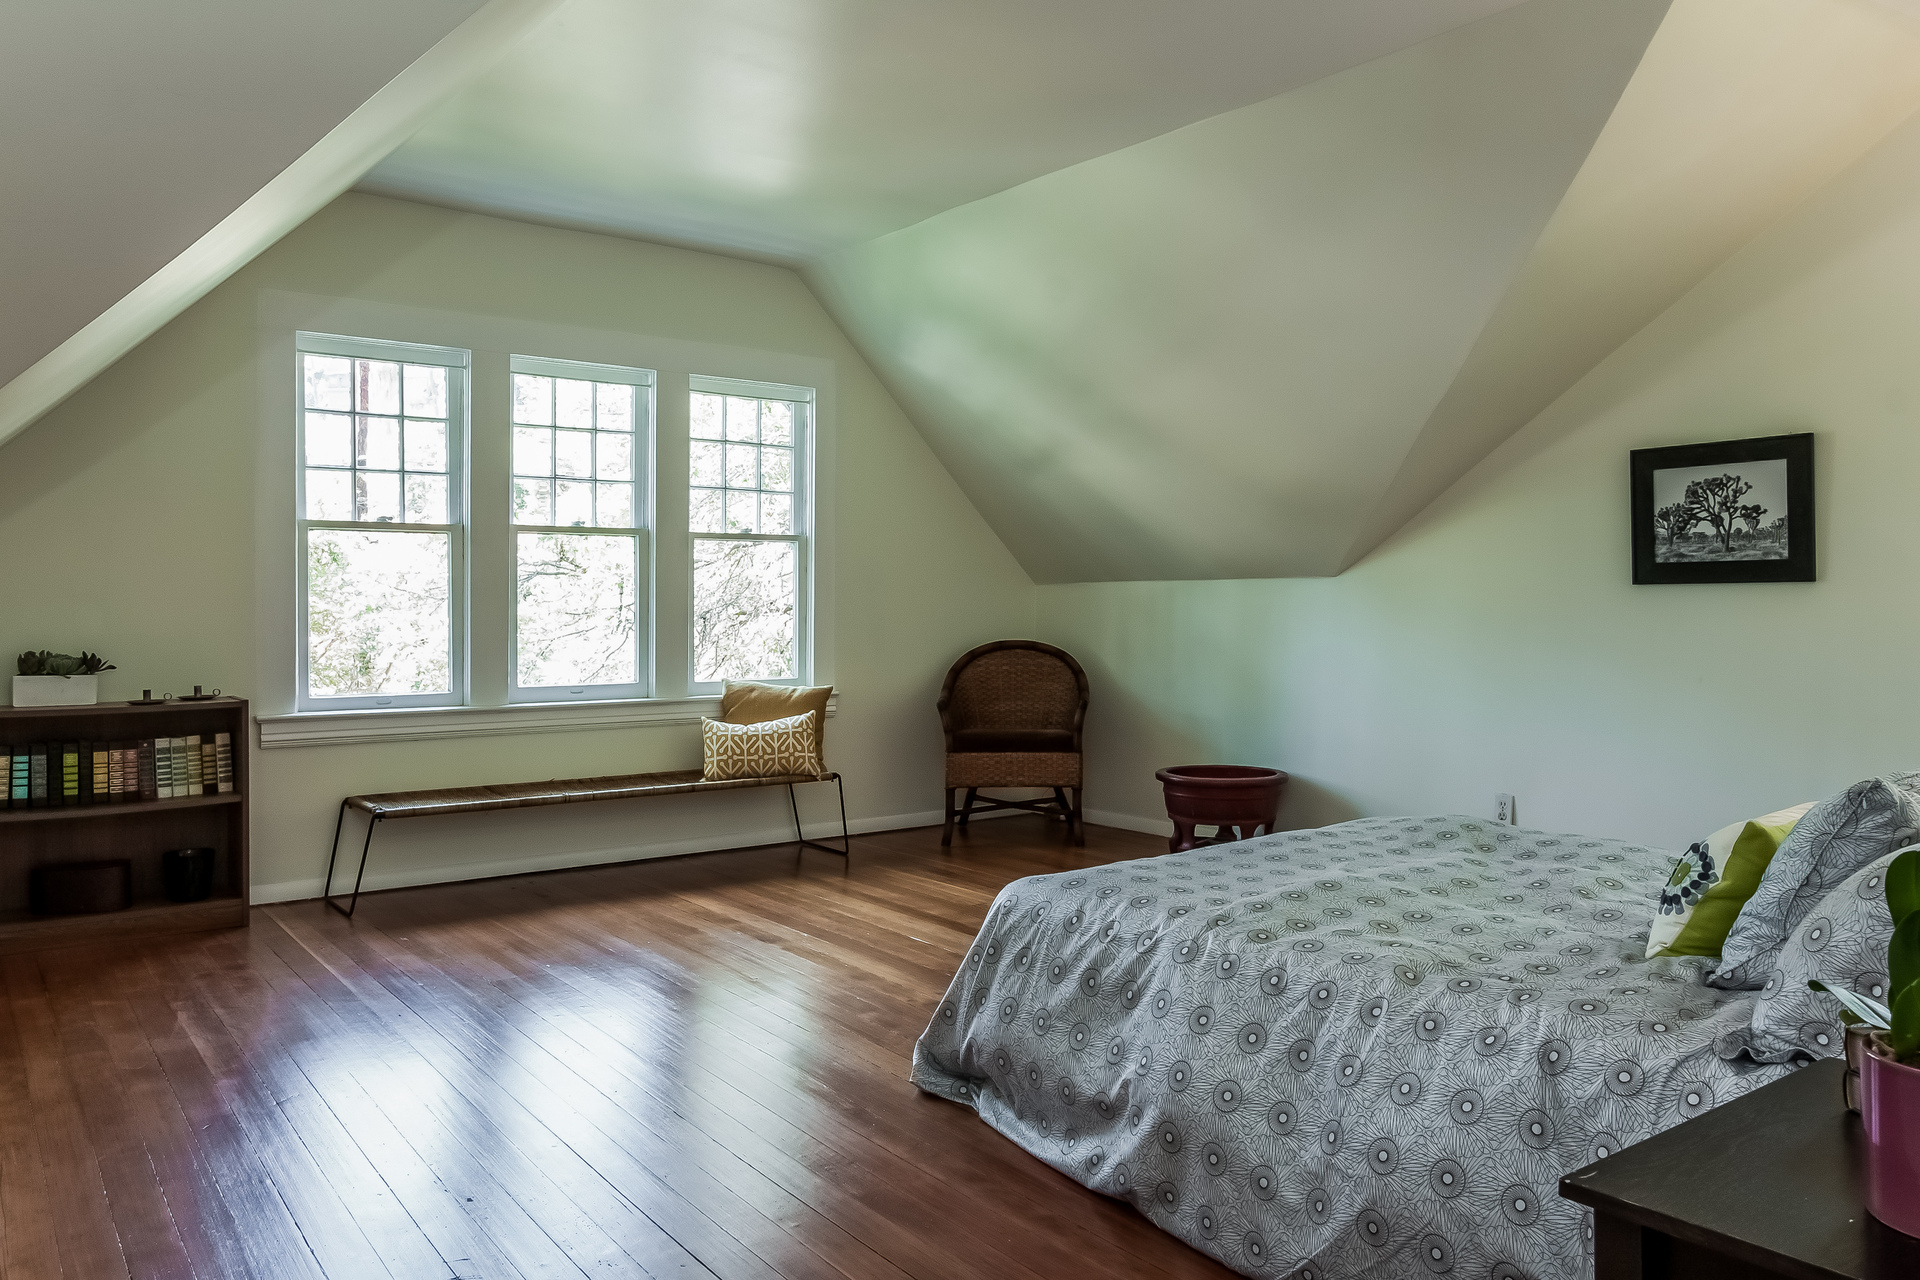 023-Bedroom-1926903-medium.jpg